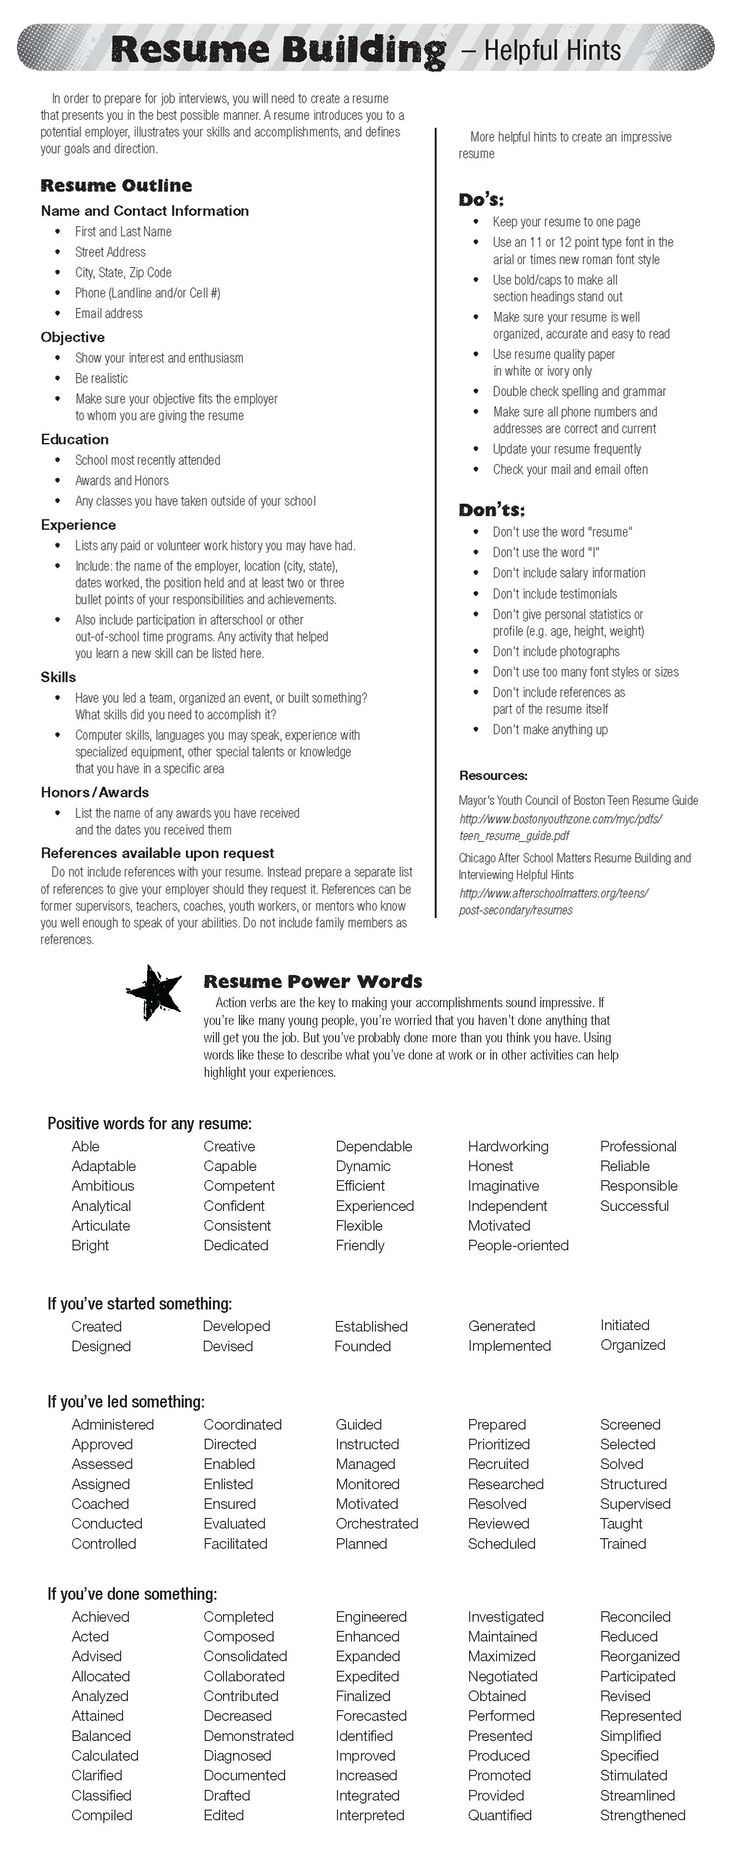 Opposenewapstandardsus  Splendid  Ideas About Resume On Pinterest  Cv Format Resume Cv And  With Marvelous  Ideas About Resume On Pinterest  Cv Format Resume Cv And Resume Templates With Archaic Restaurant Manager Resume Objective Also Good Cover Letters For Resume In Addition References Template For Resume And Email For Sending Resume As Well As Forklift Operator Resume Sample Additionally Actors Resumes From Pinterestcom With Opposenewapstandardsus  Marvelous  Ideas About Resume On Pinterest  Cv Format Resume Cv And  With Archaic  Ideas About Resume On Pinterest  Cv Format Resume Cv And Resume Templates And Splendid Restaurant Manager Resume Objective Also Good Cover Letters For Resume In Addition References Template For Resume From Pinterestcom